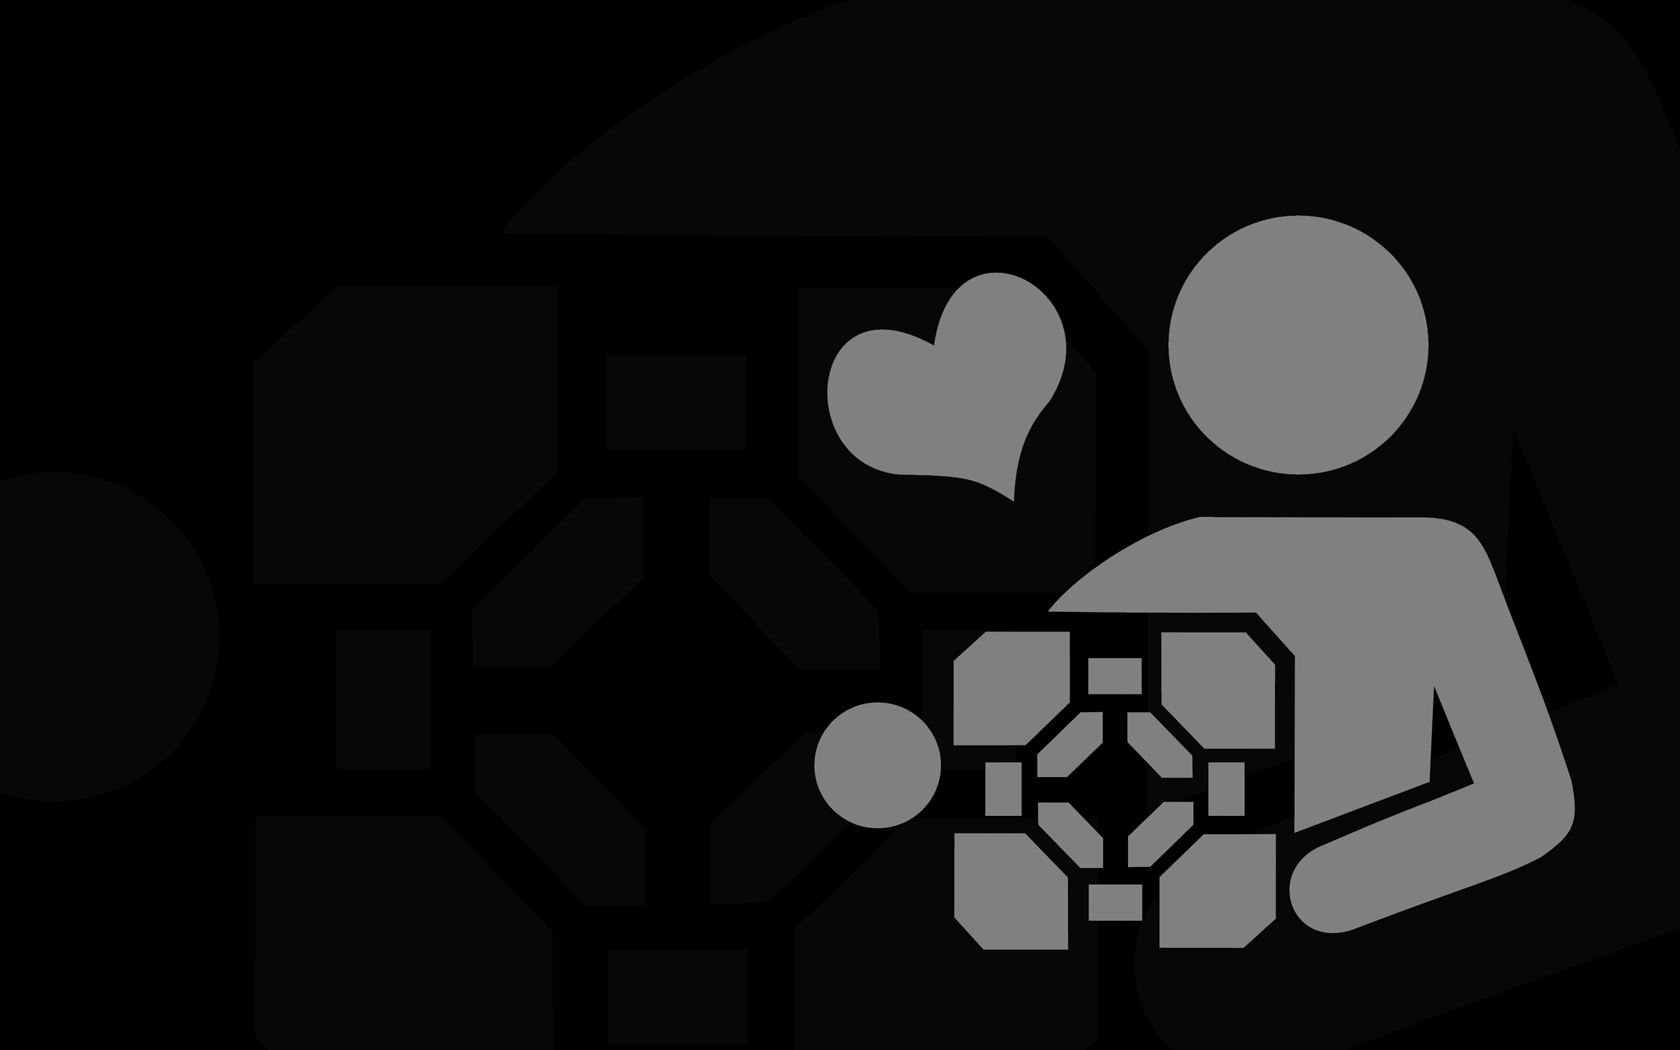 Portal Companion Cube Background - Portal Companion Cube Background